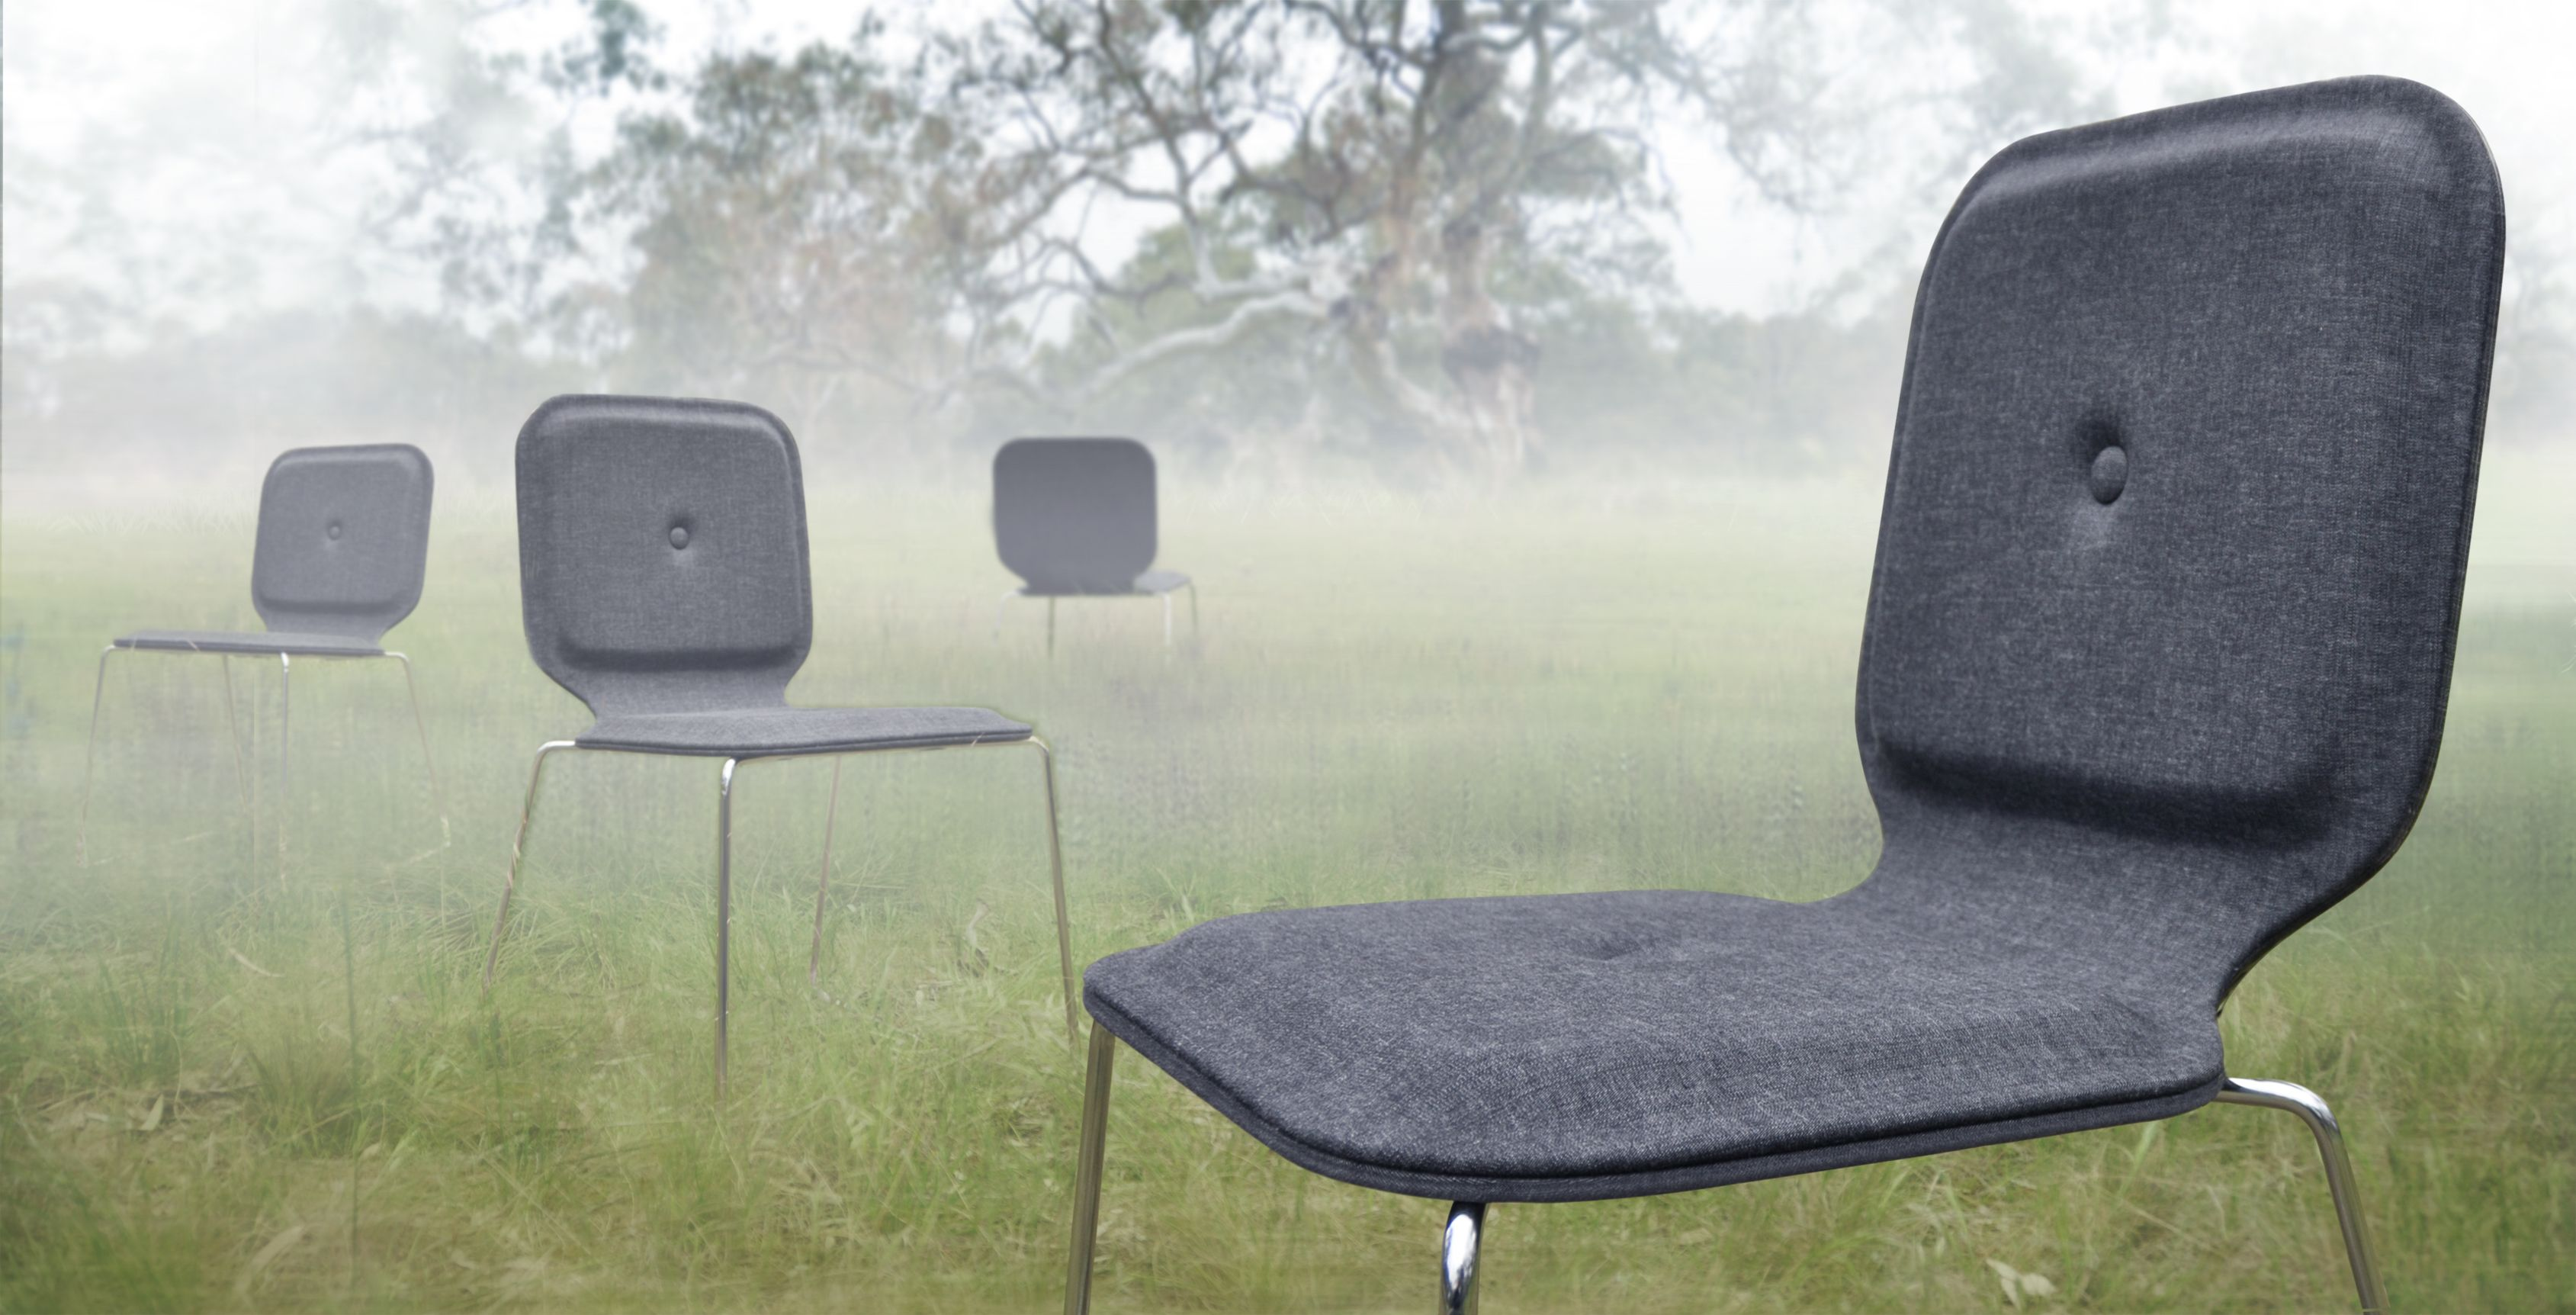 2012 Elwood Chairs by VOSC